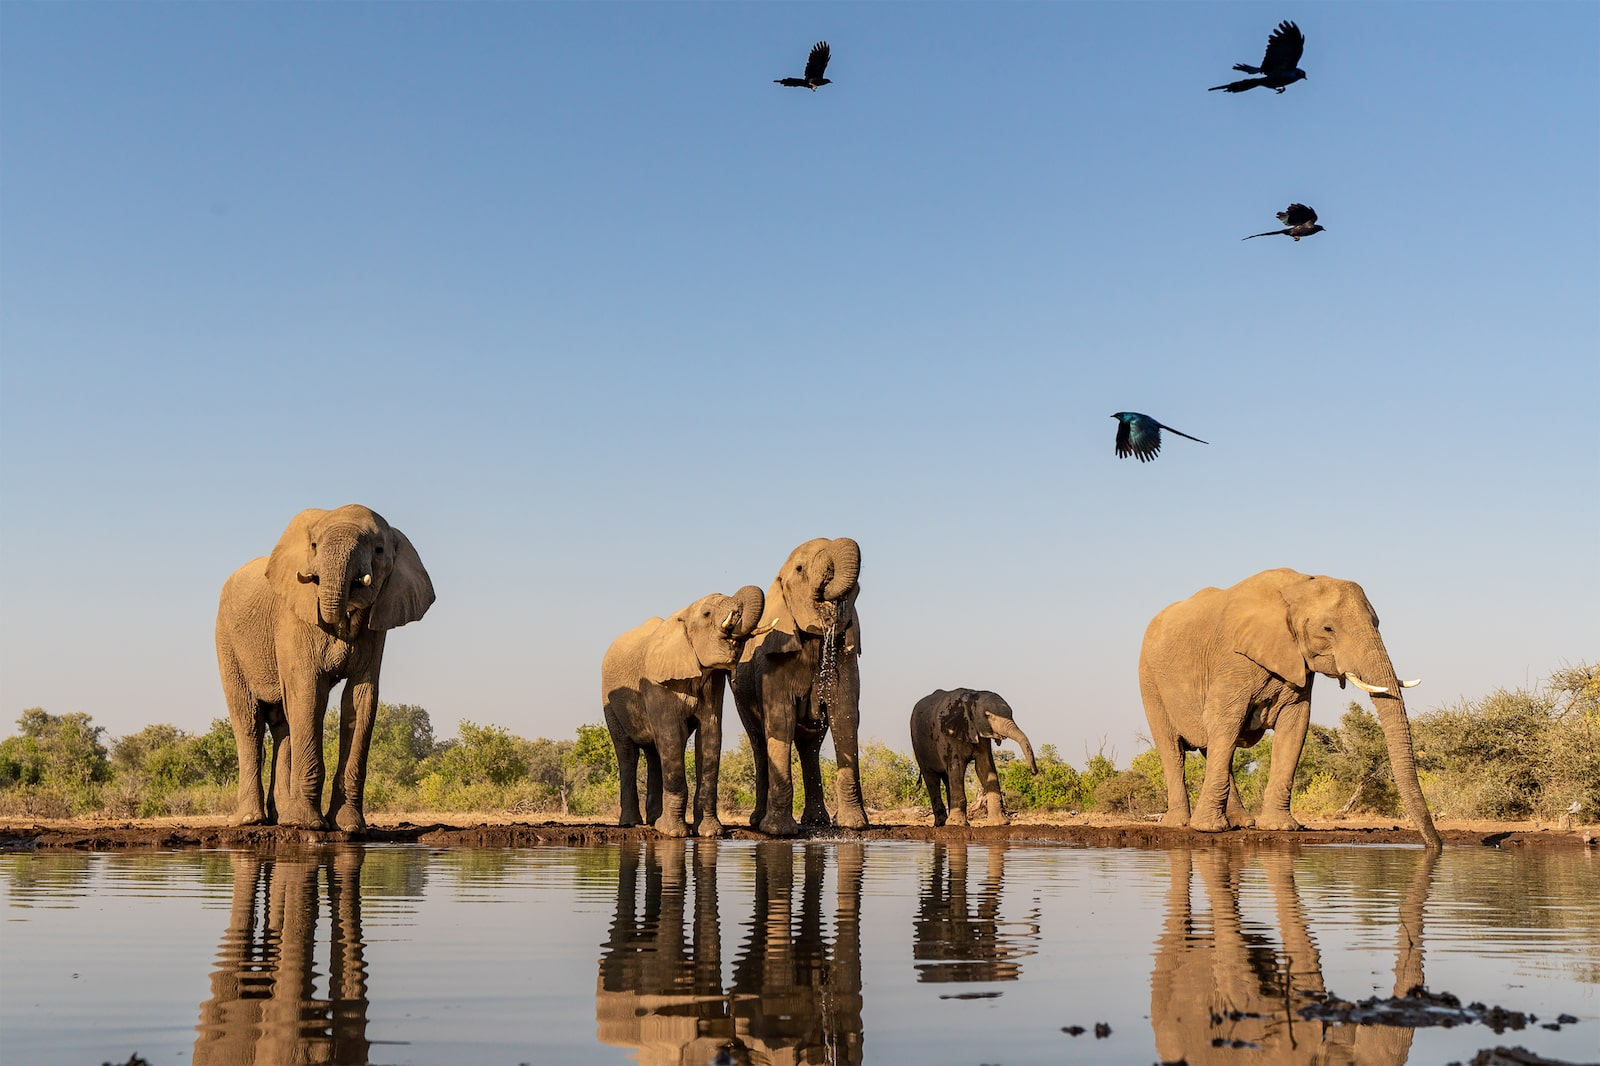 Elephants and Starlings